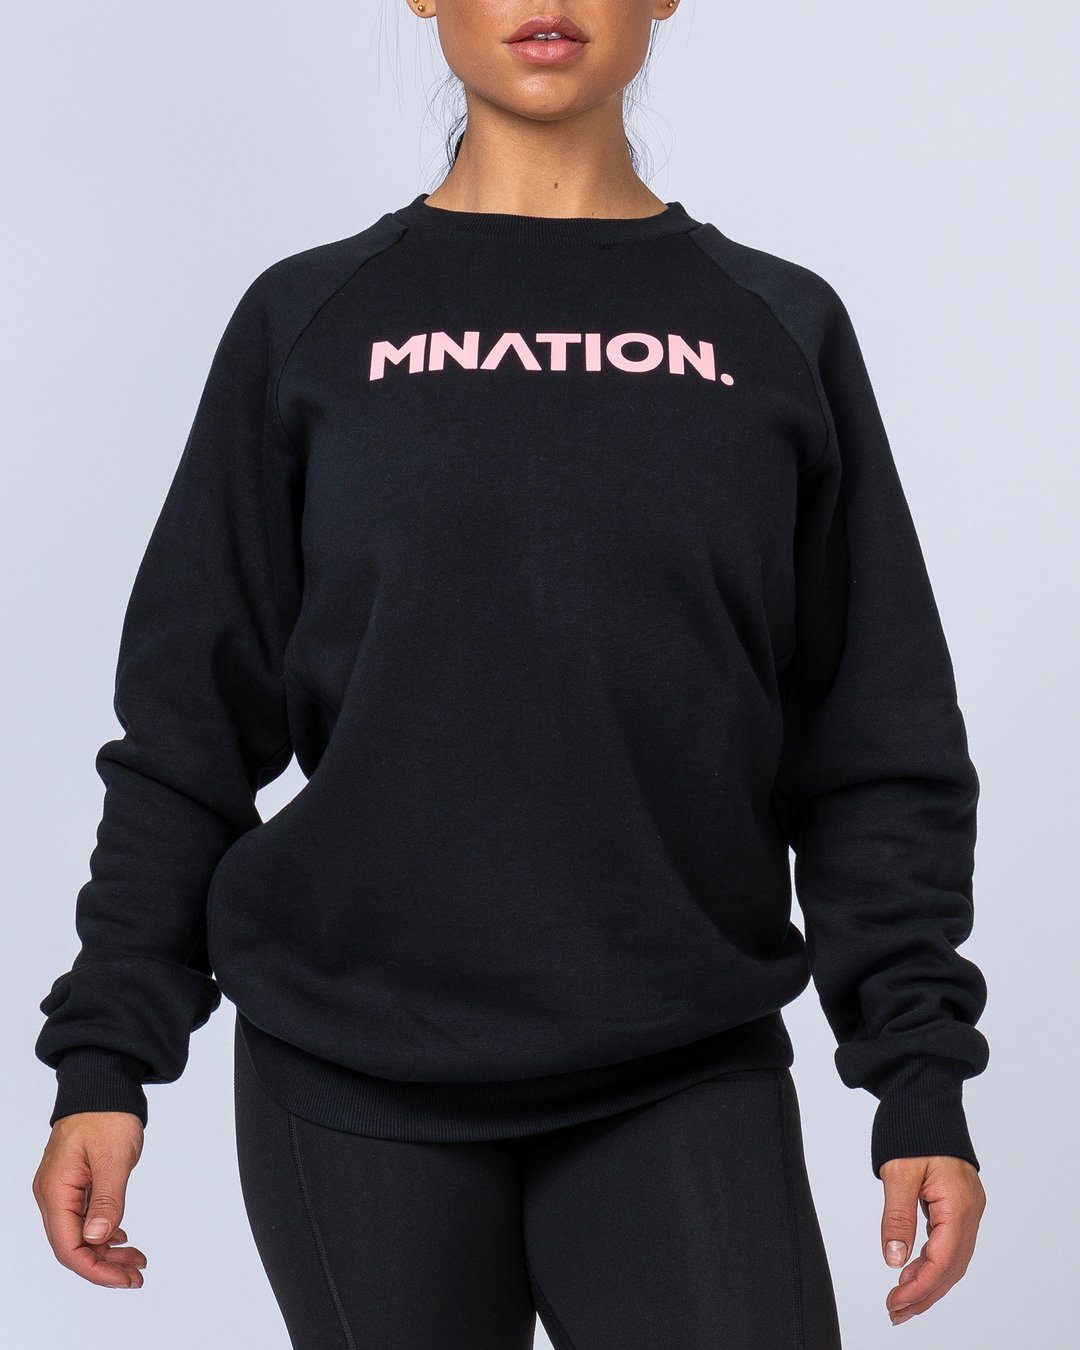 Muscle Nation Slouchy Jumper - Black